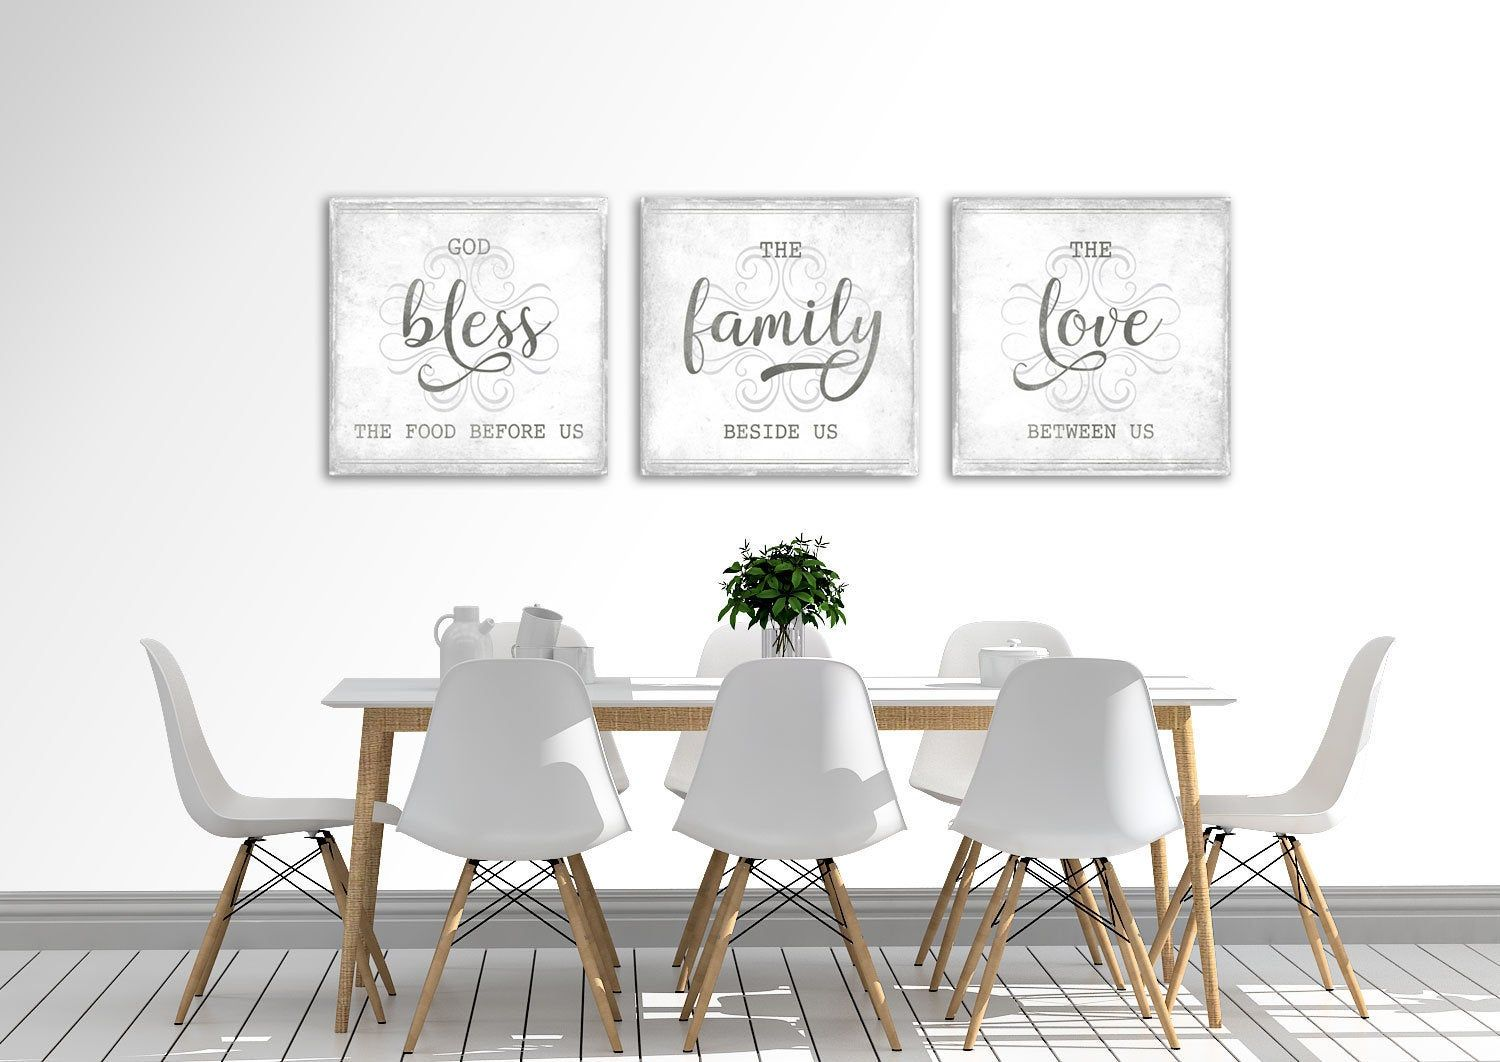 Modern Farmhouse Wall Decor Dining Room Bless The Food Before Us